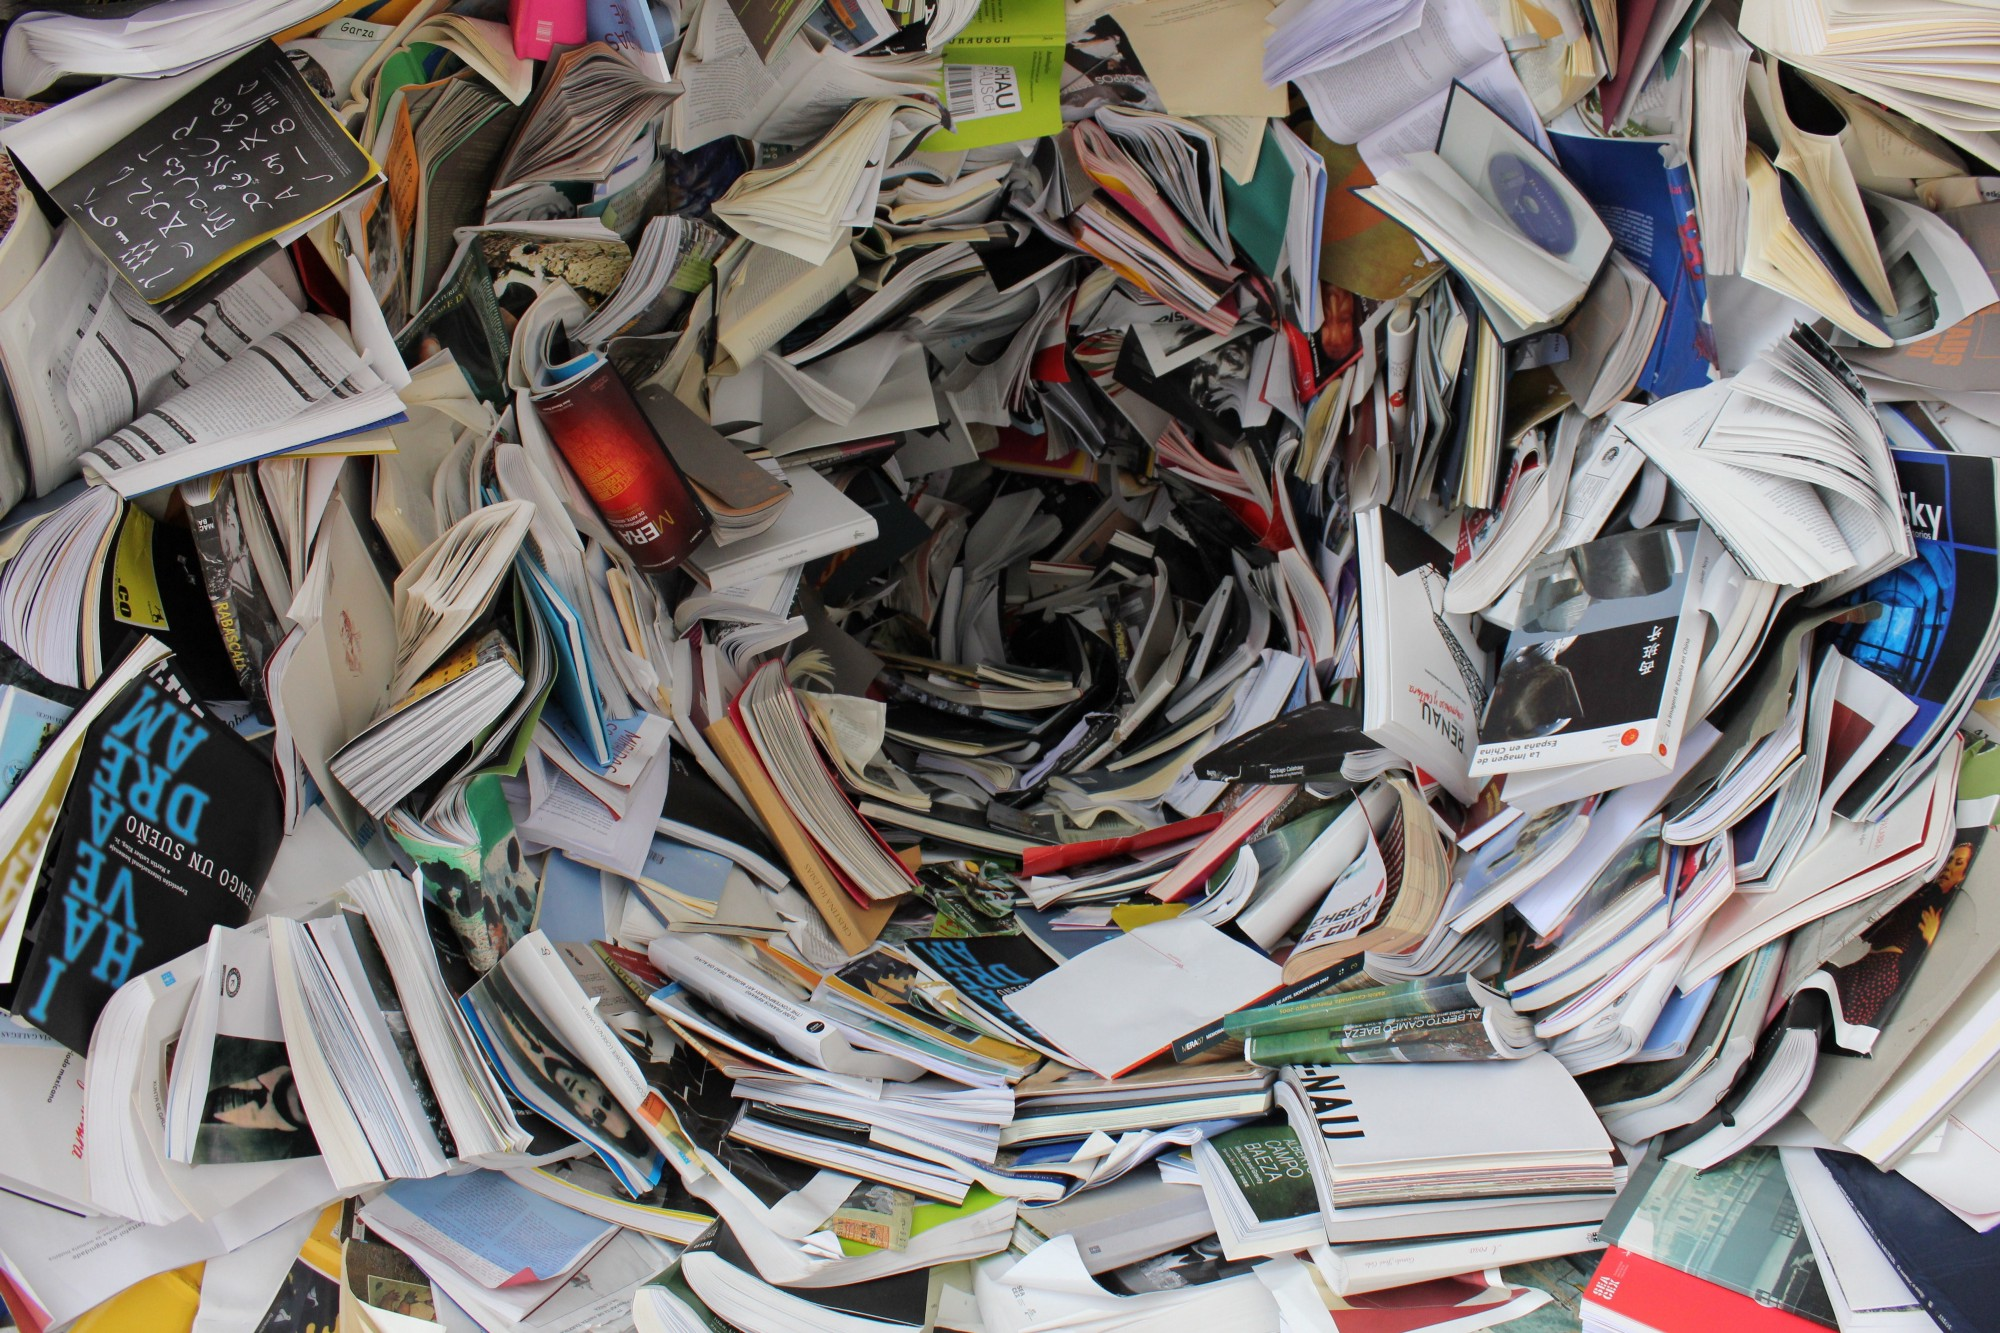 Chipping away at the hoard: knowing (and sorting) your content